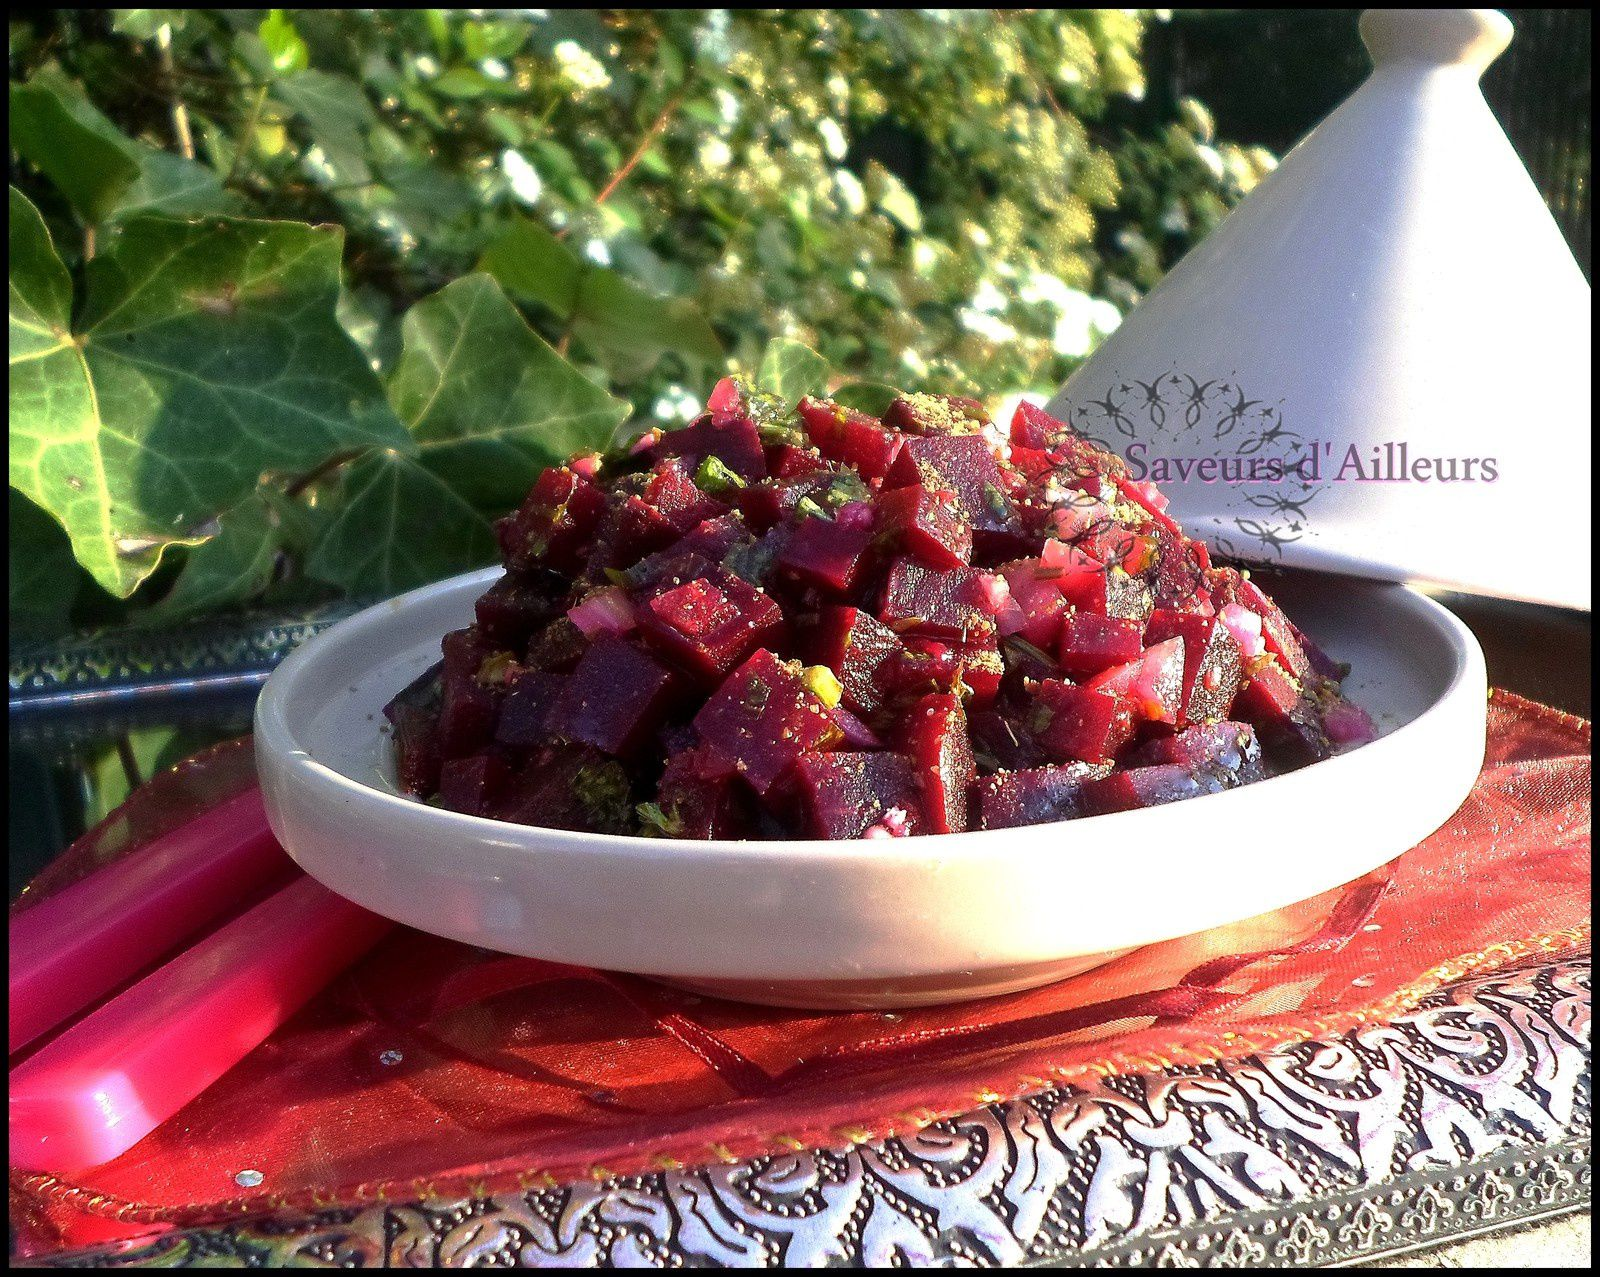 Salade De Betterave Au Cumin Version Marocaine - Cuisiner la betterave